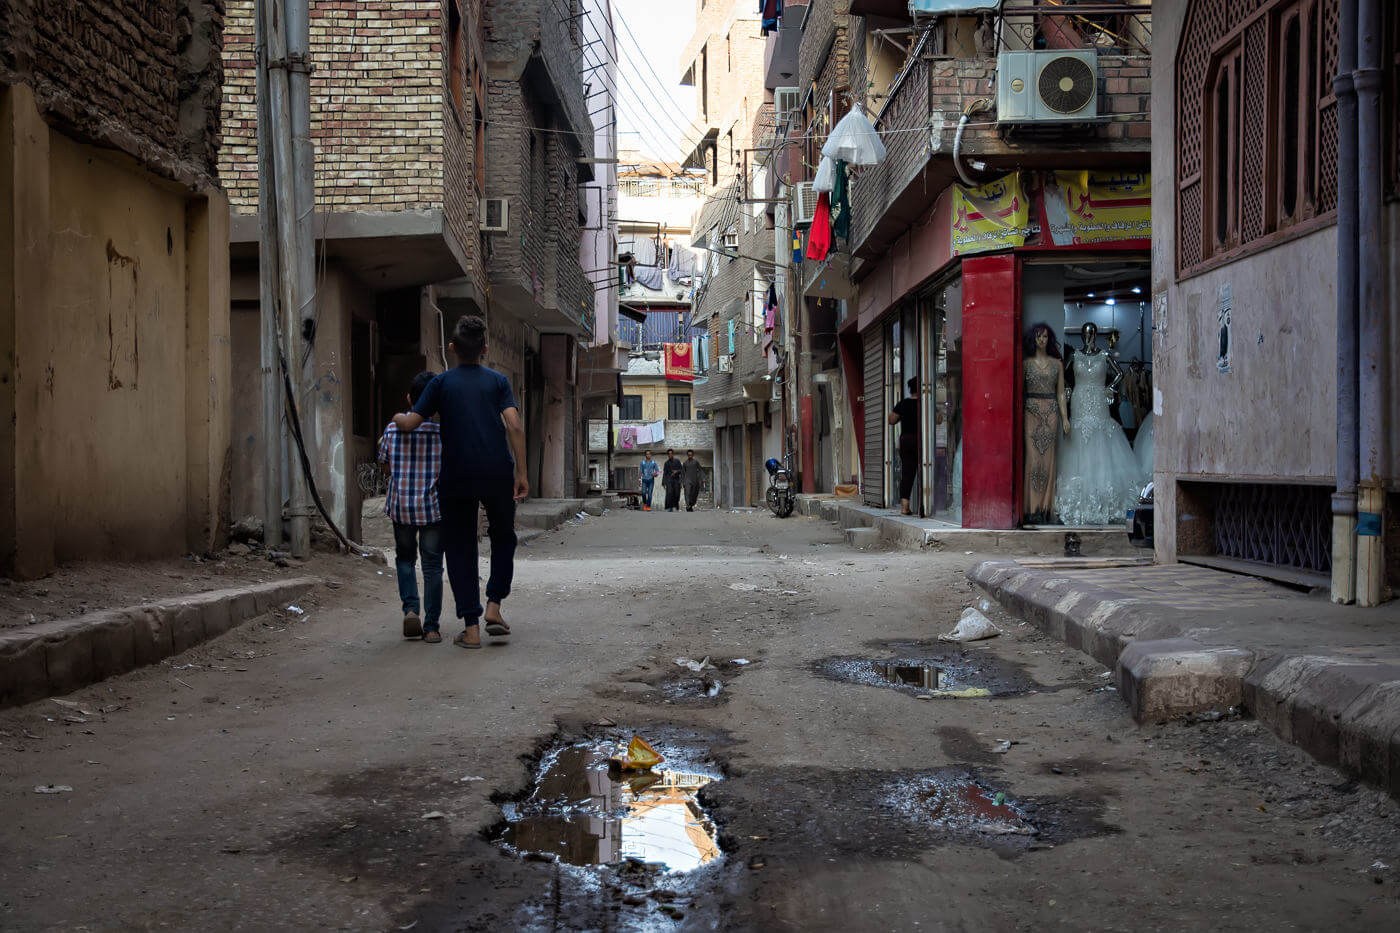 Street in Luxor, Egypt - Photo by Zed Sindelar of CuriousZed Photography